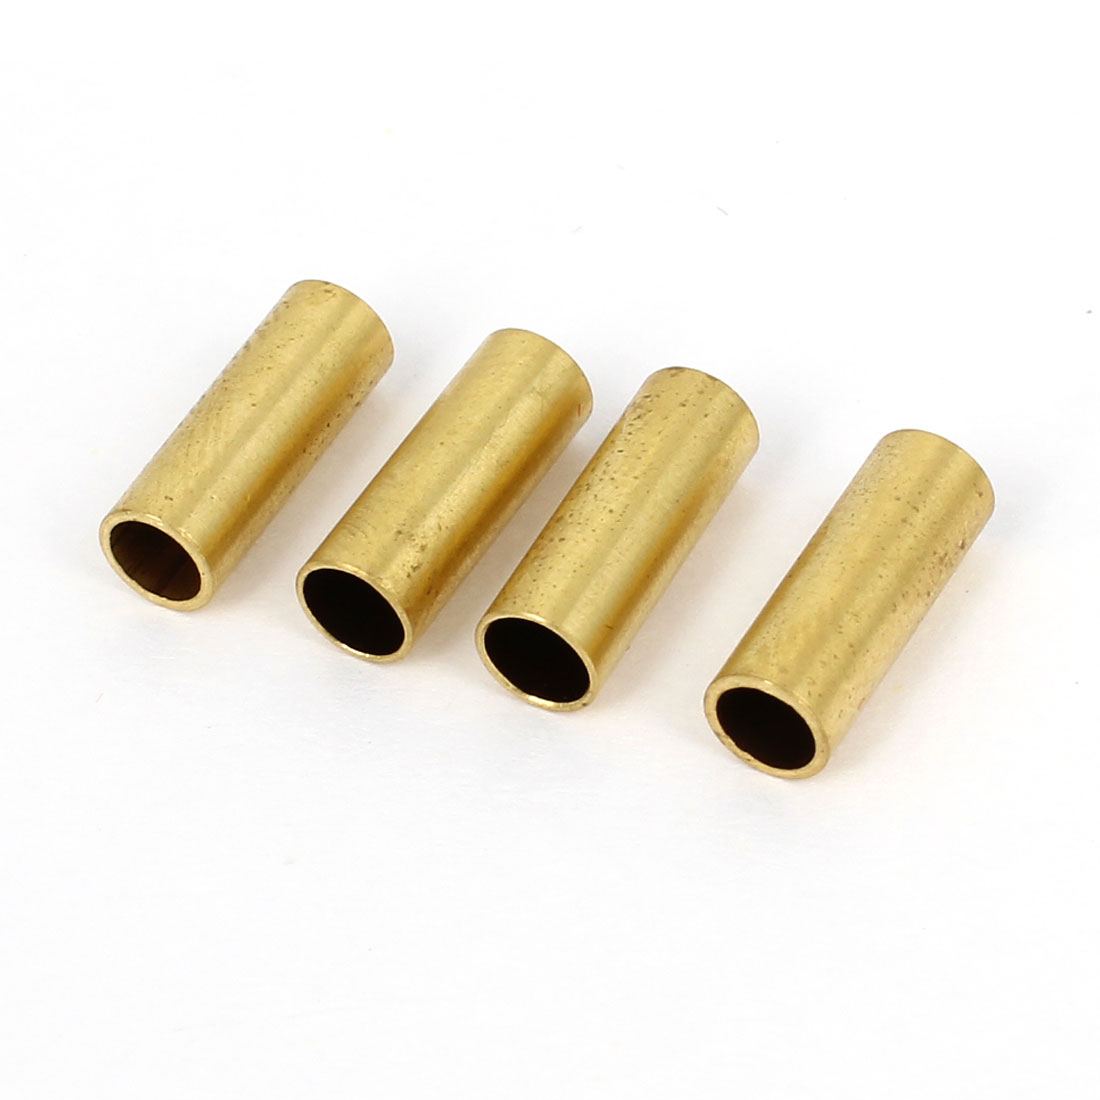 4 Pcs 4mm x 4.76mm x 9mm Split Type Cylinder Shaped Gold Tone Metal Prop Adapter Propeller Connector Fitting for RC Model Ship Boat